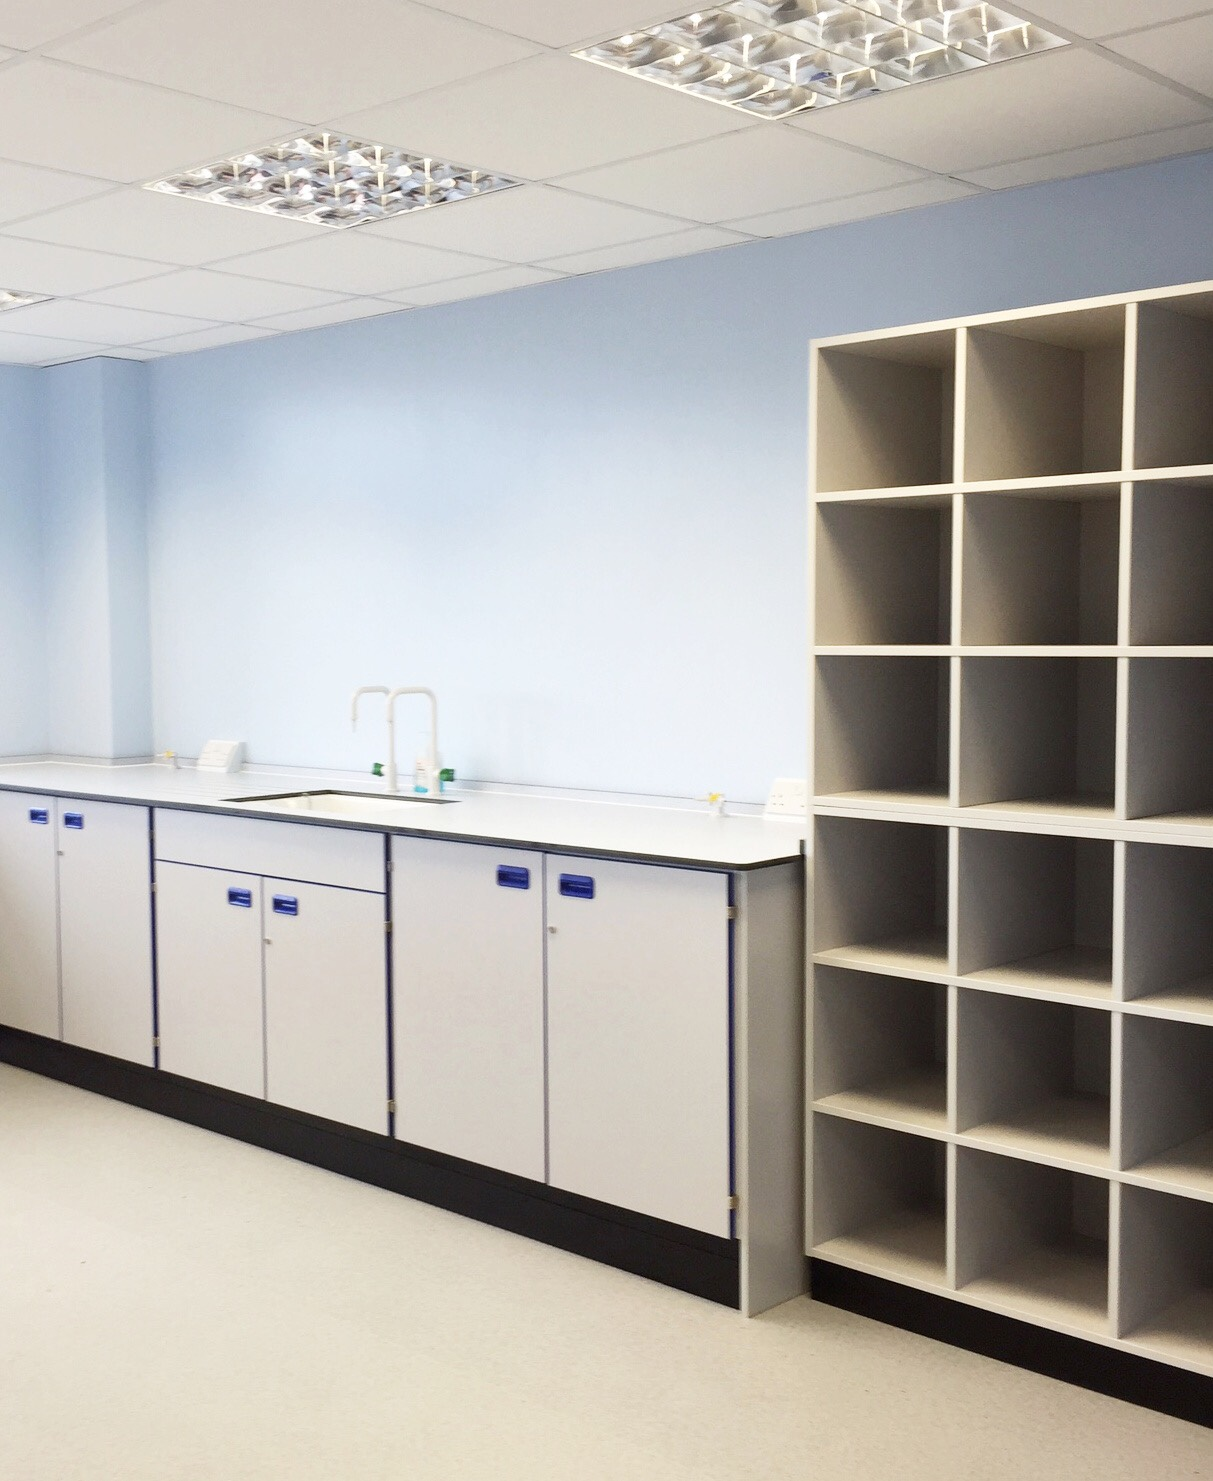 AJT Laboratory Furniture Design Trespa Toplab School Refurb School Furniture